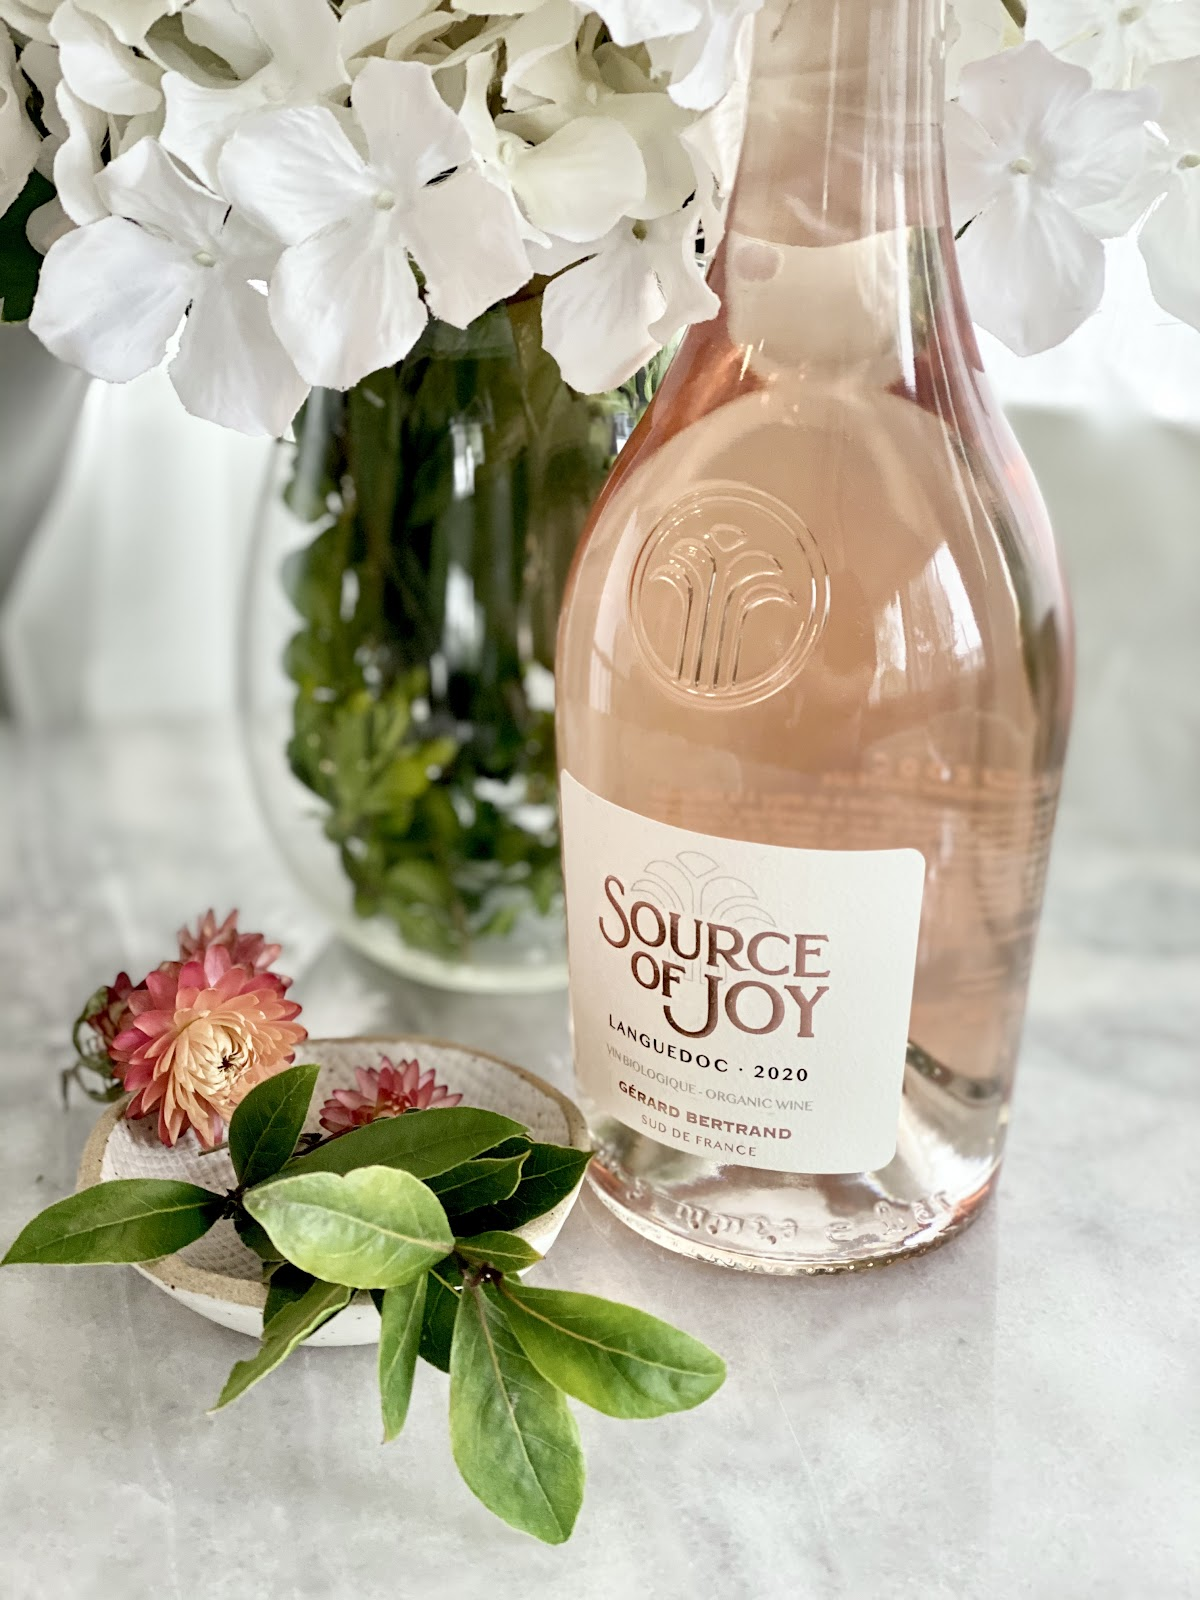 alison kent the home kitchen 5 week series blog on rose wine with barb wild of the good wine gal rose wines selection featuring source of joy